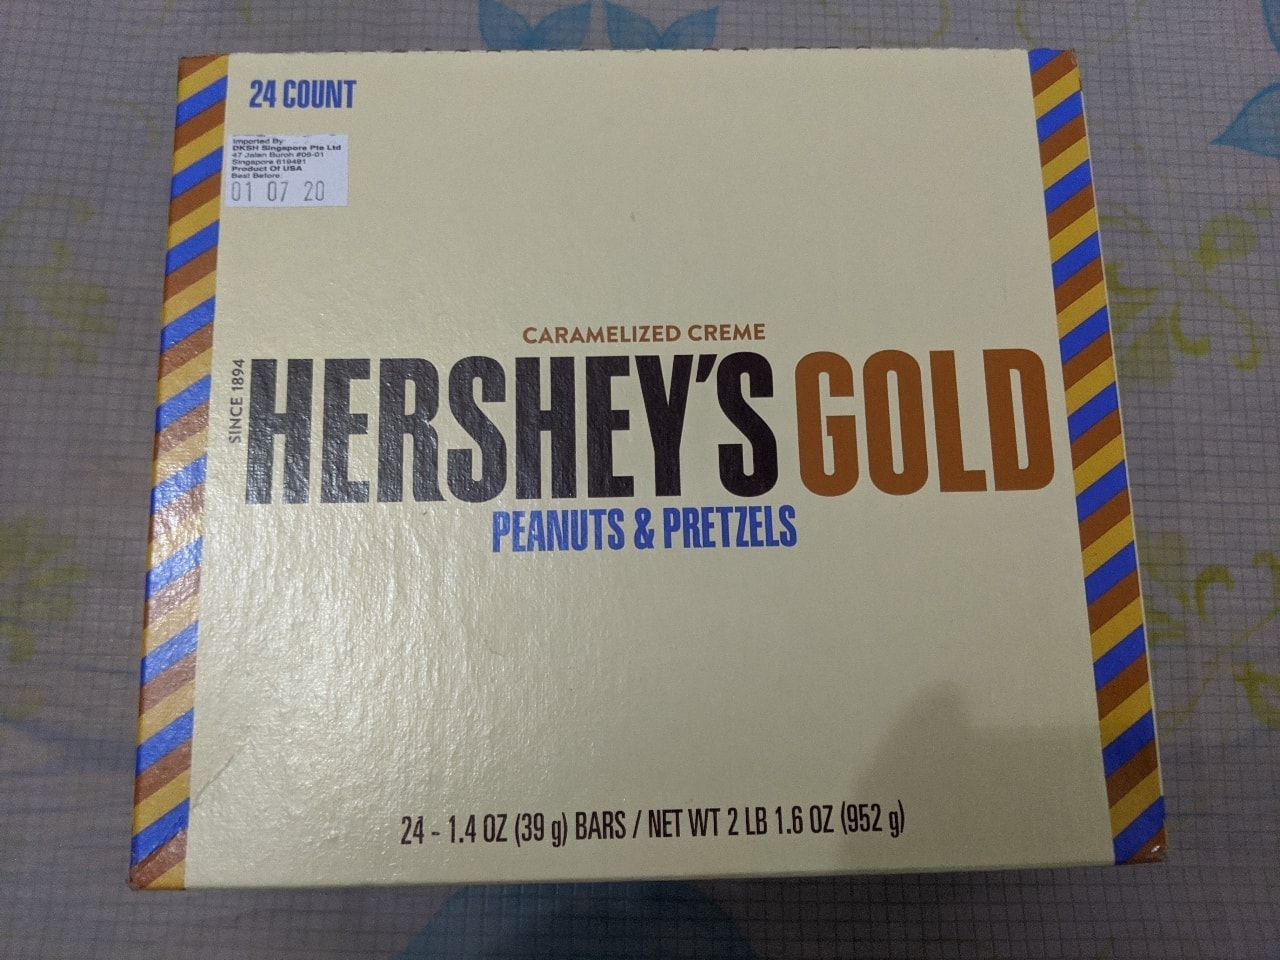 Hershey's Gold (Peanuts and Pretzels) - best consumed by 1st July 2020.